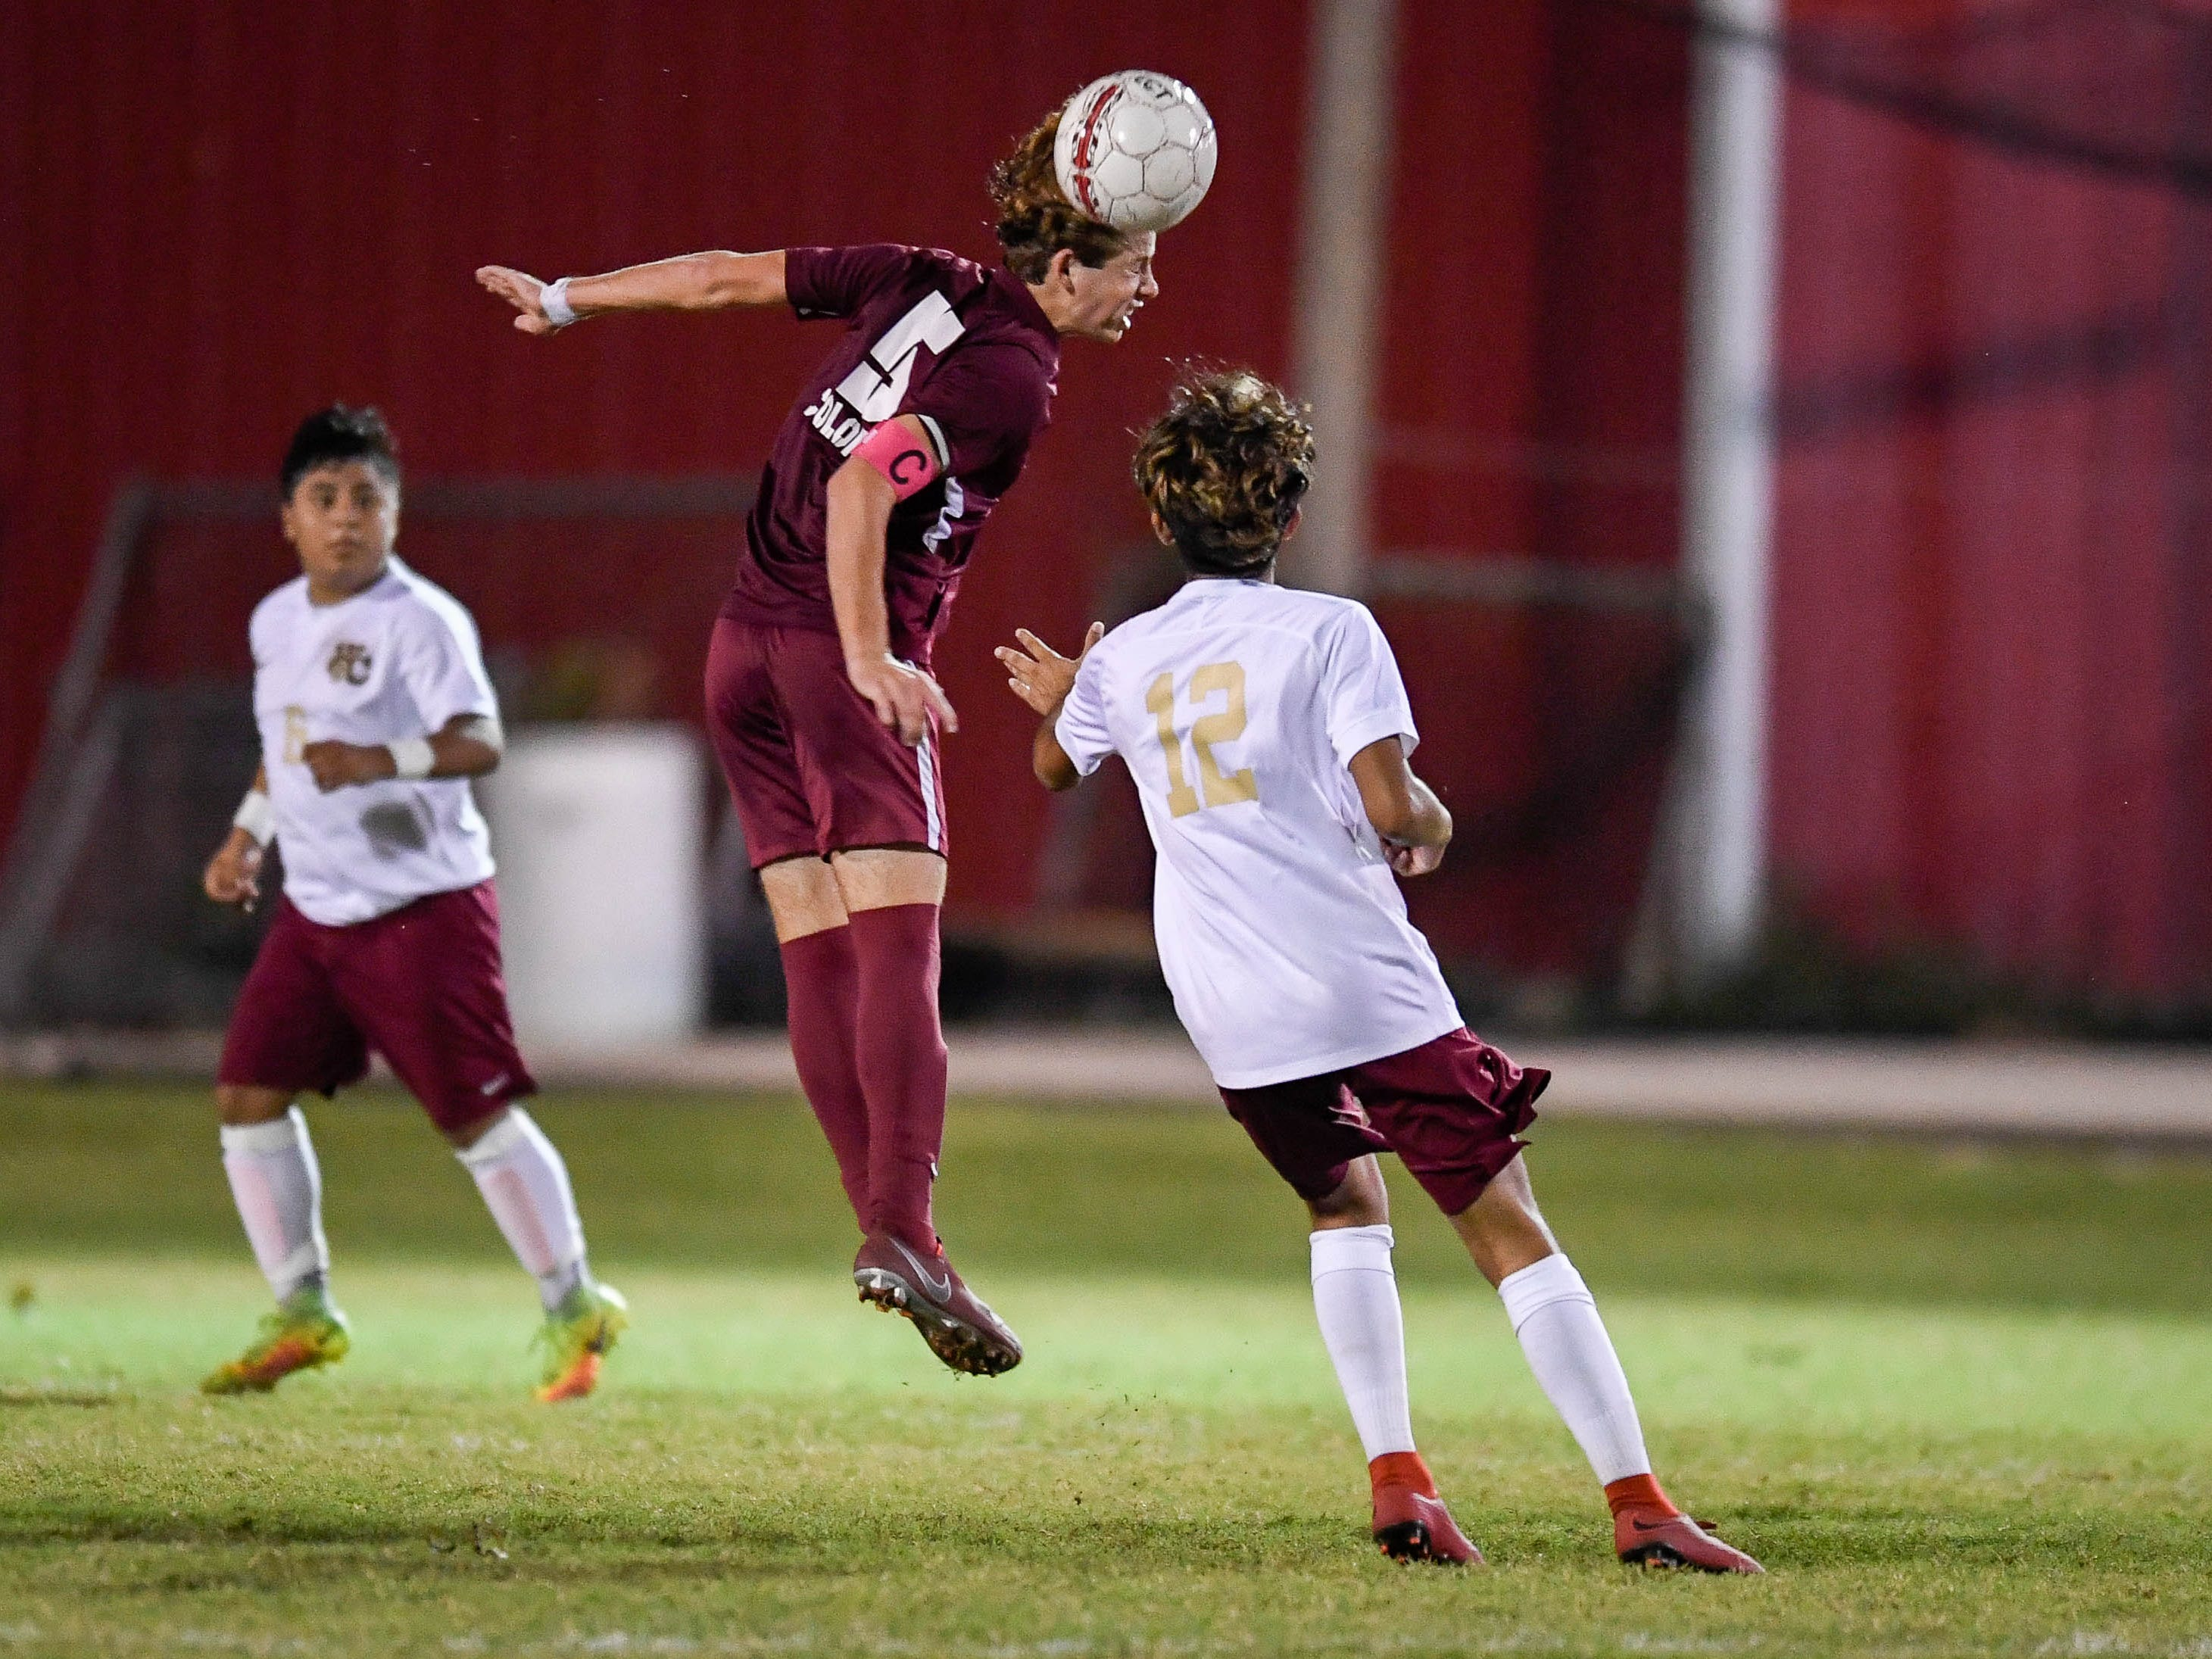 Henderson County's Cale Wright (5) heads the ball over defense from Webster's Erick Escalante (12) as the Henderson County Colonels play the Webster County Trojans in the Sixth District Soccer Tournament at Colonel Field Wednesday, October 10, 2018.